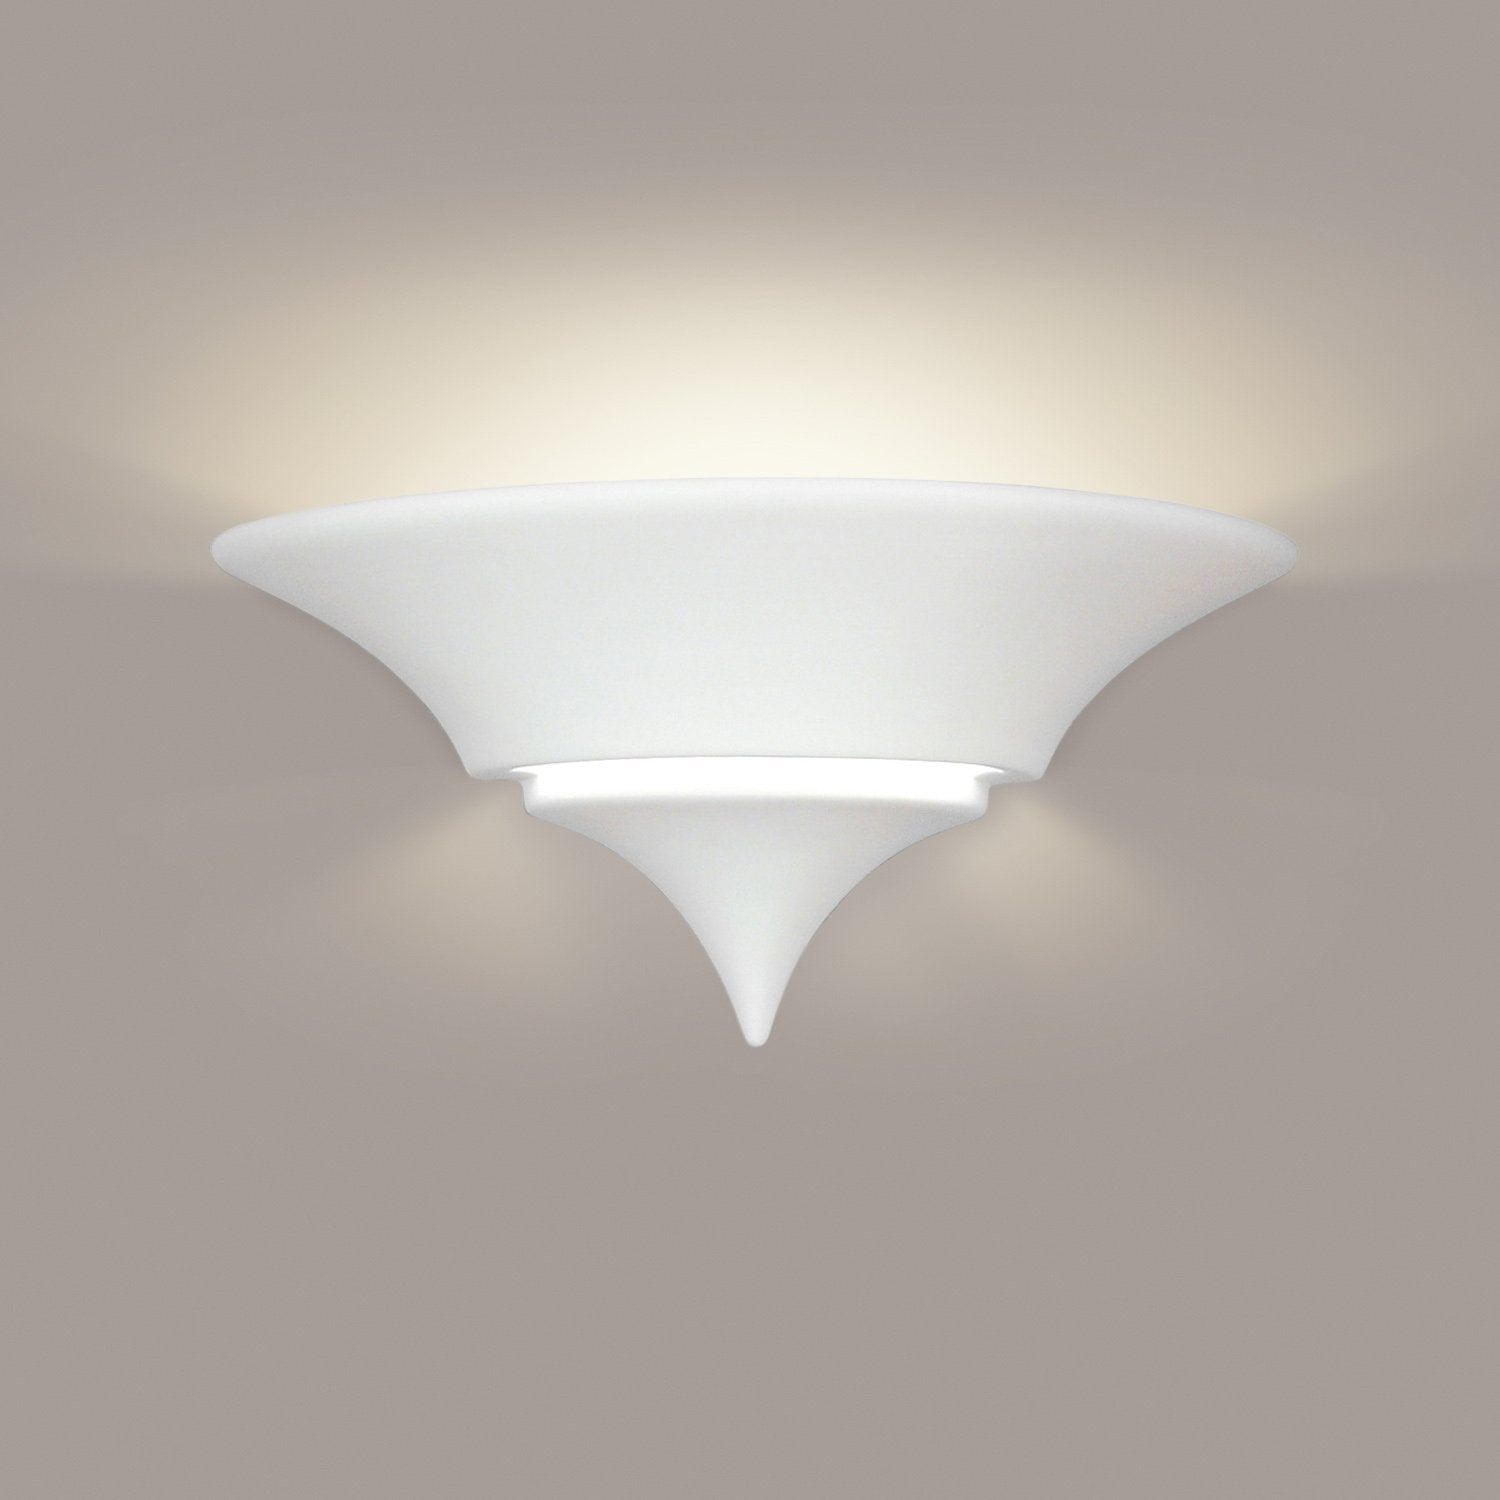 A19 401-LEDGU24-FC Islands of Light Collection Atlantis Firecracker Finish Wall Sconce from A19